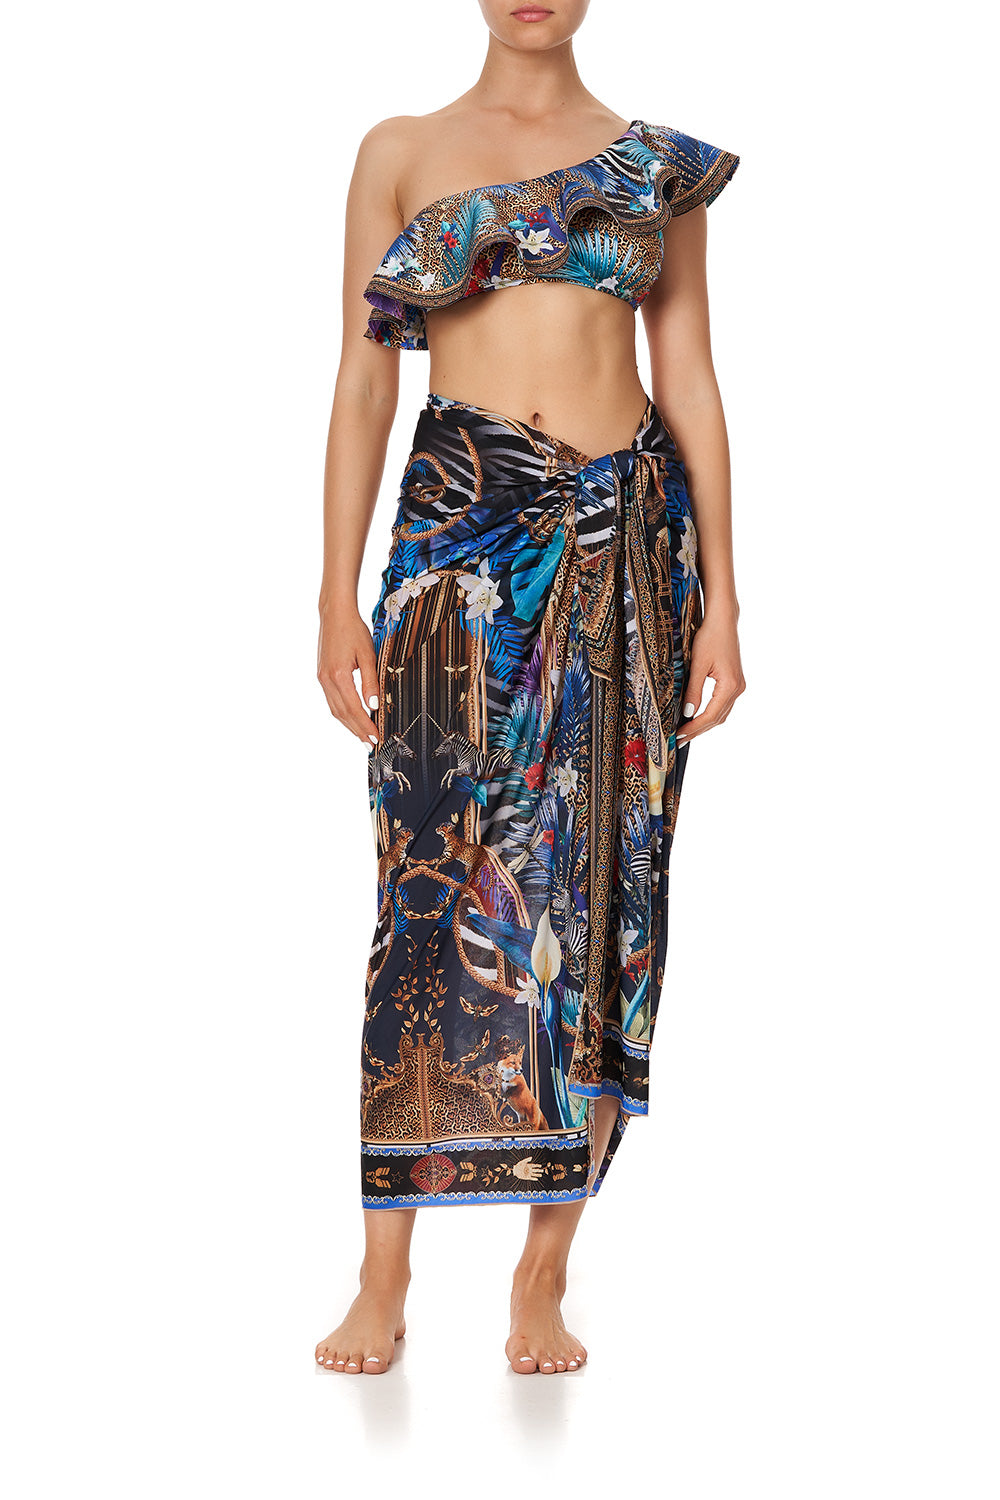 LONG SARONG RAINBOW ROOM